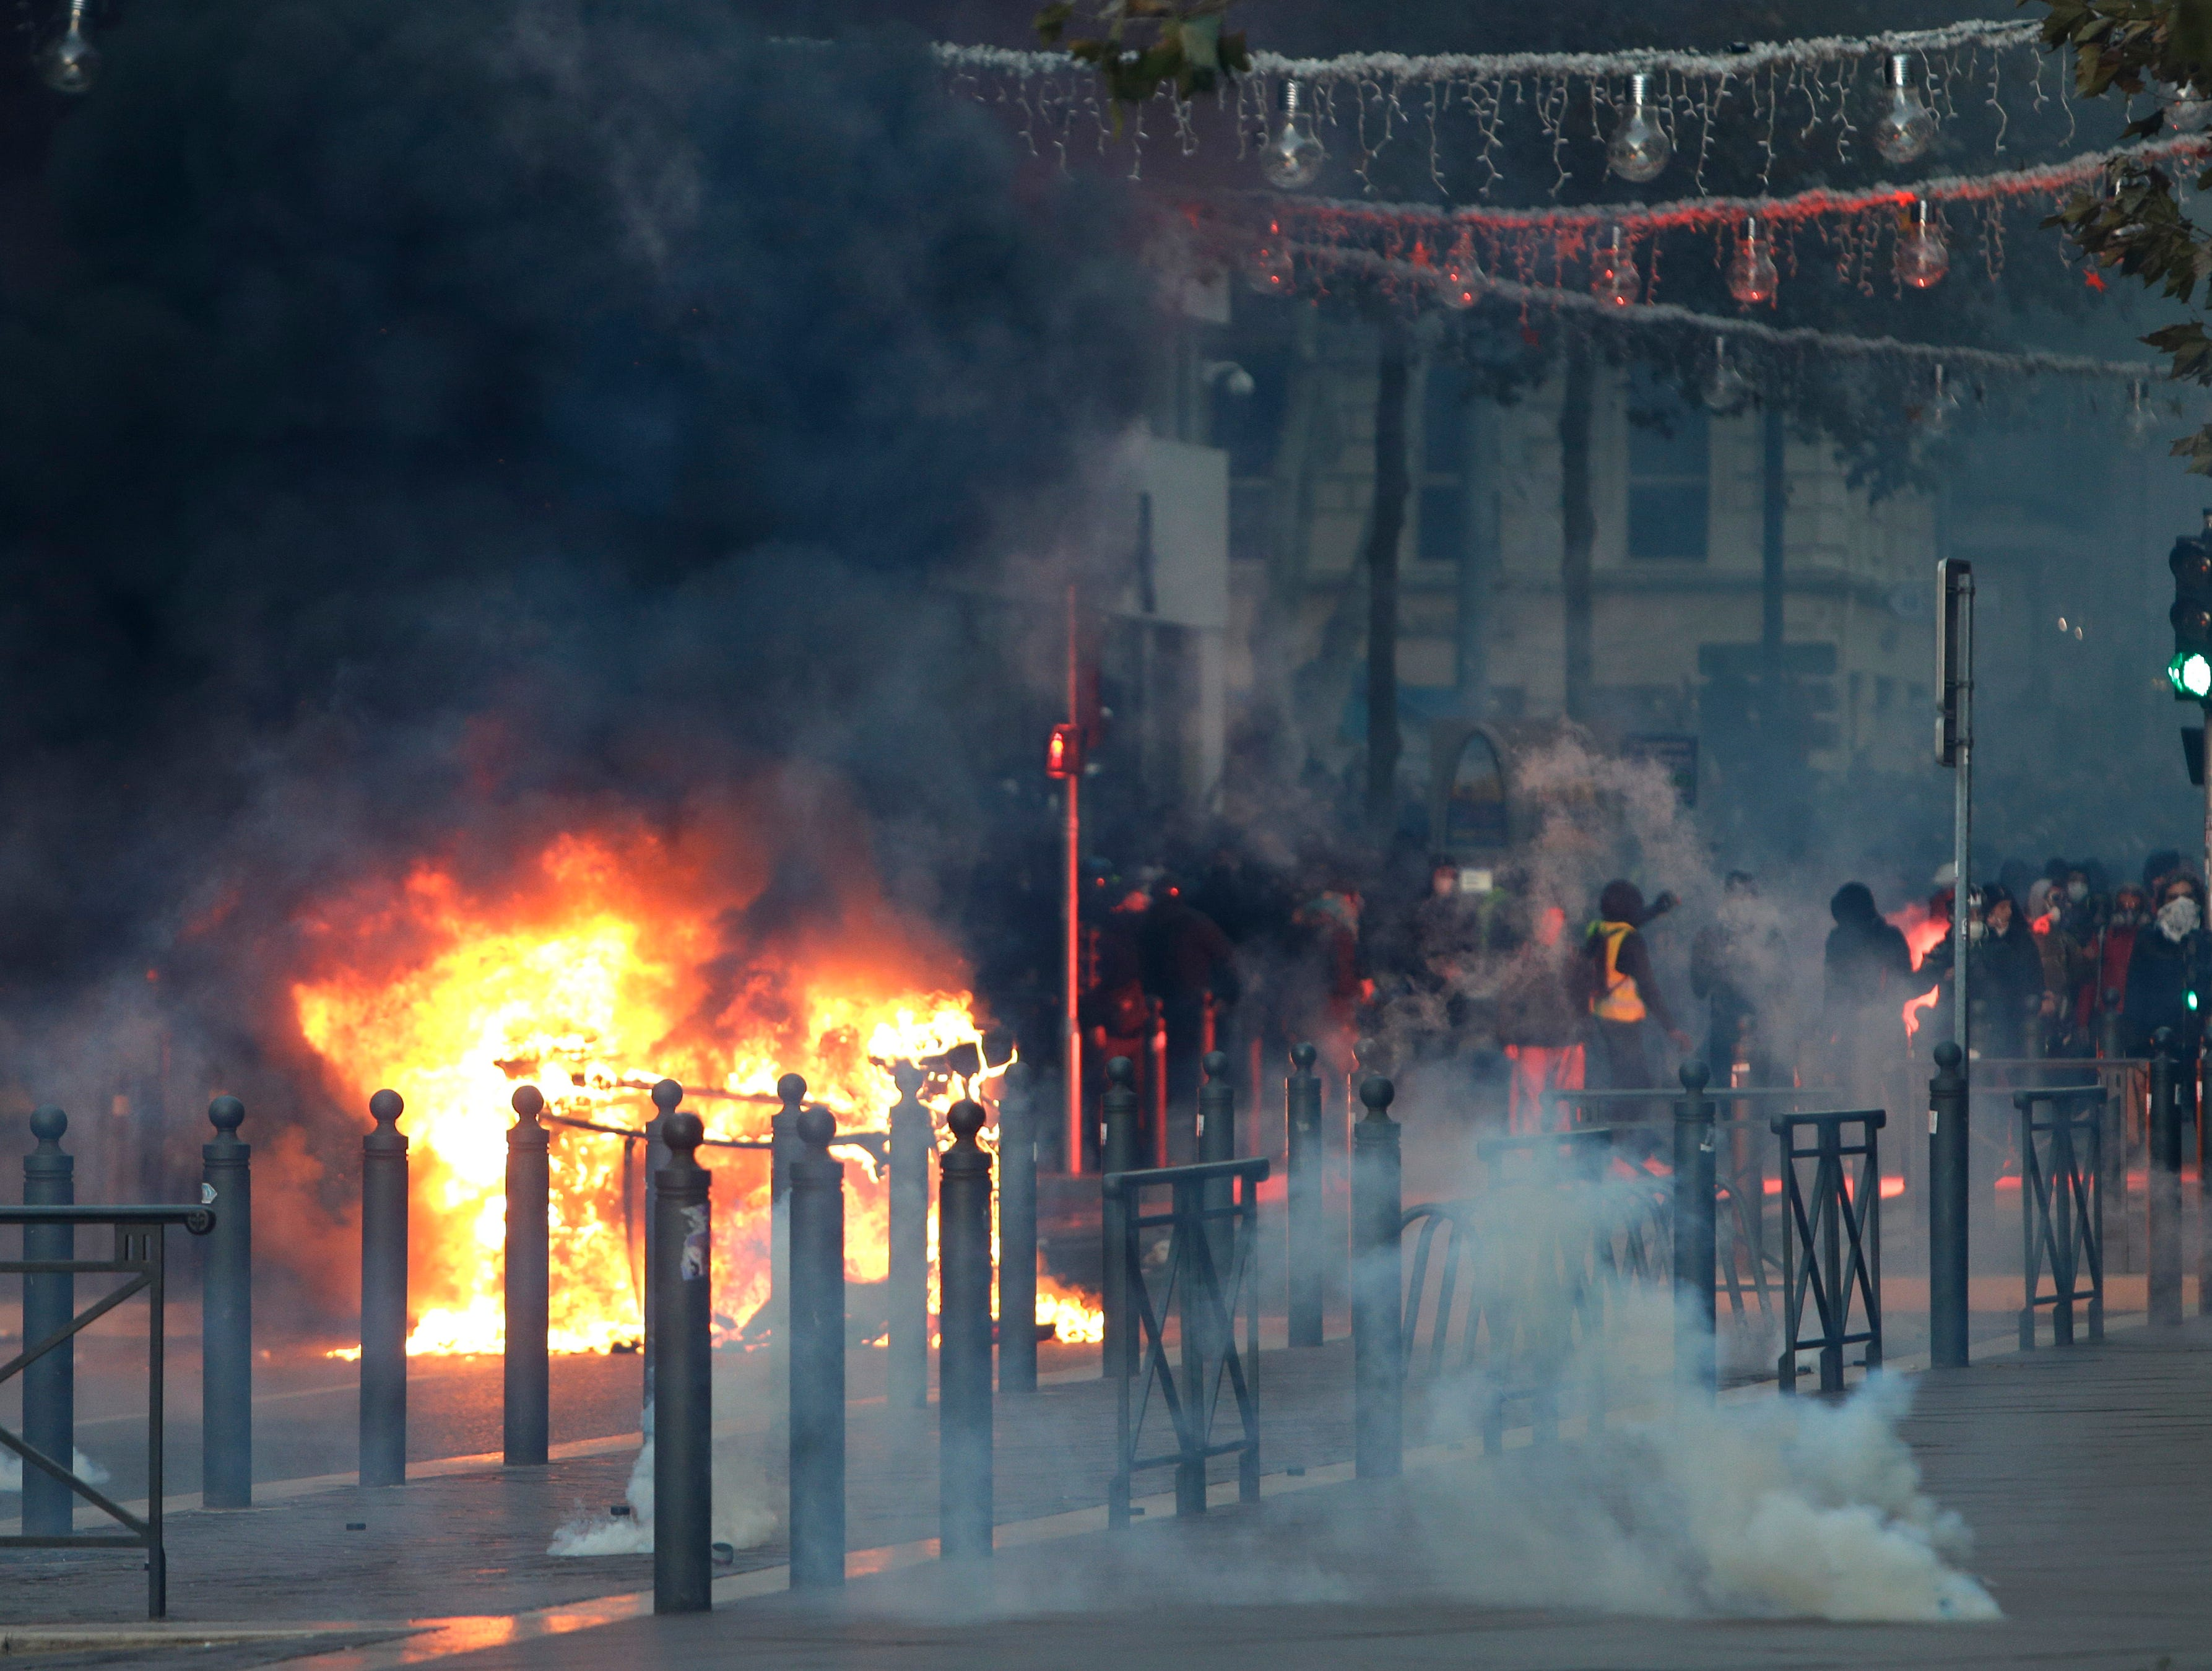 Demonstrators stand behind a burning car during clashes, Saturday, Dec. 8, 2018, in Marseille, southern France. French riot police fired tear gas and water cannon in Paris on Saturday, trying to stop thousands of yellow-vested protesters from converging on the presidential palace to express their anger at high taxes and French President Emmanuel Macron.